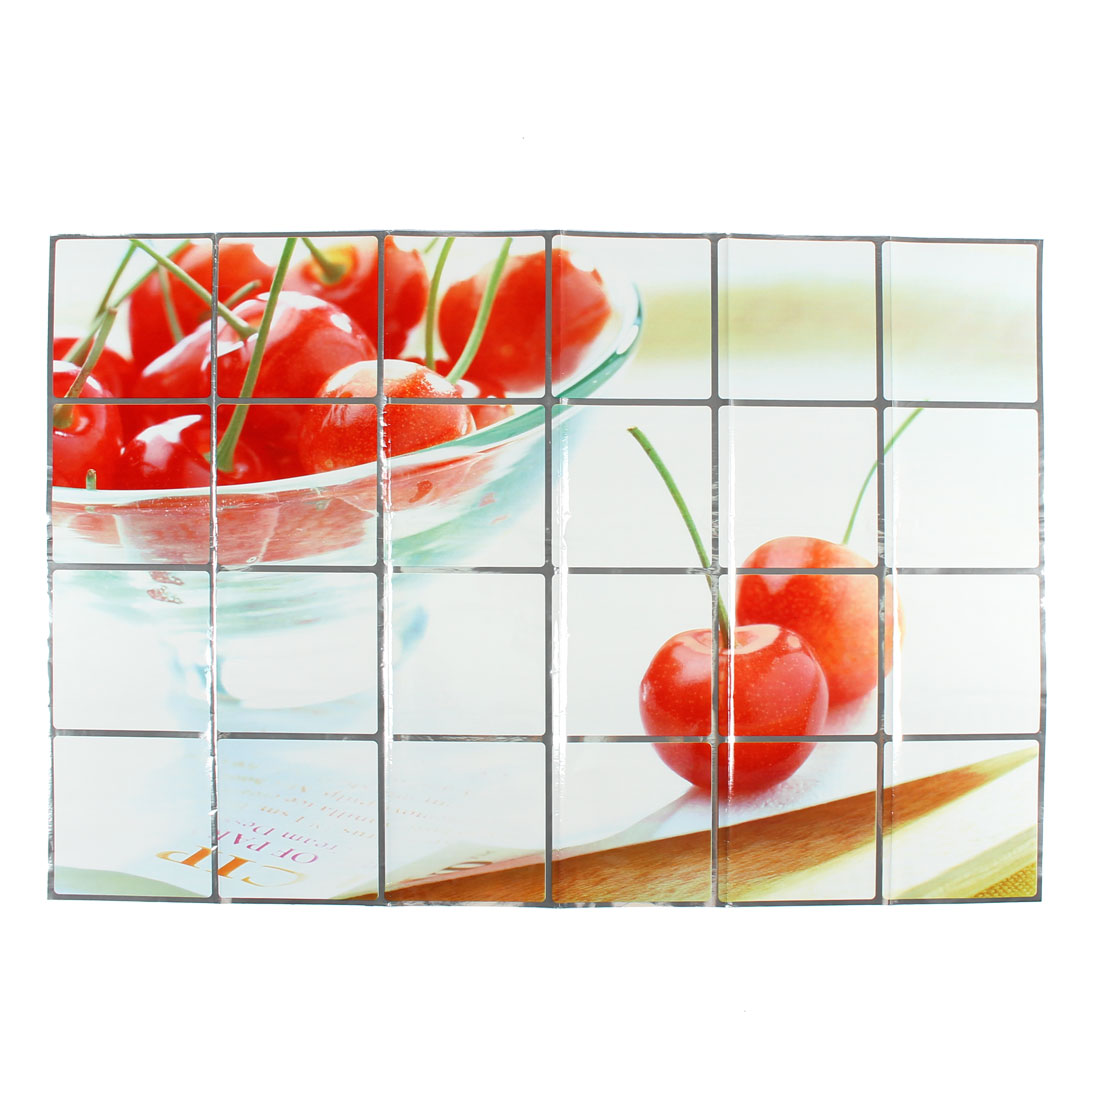 Kitchen Cherries Pattern Removable Self-adhesive Oilproof Wall Window Sticker 90 x 60cm